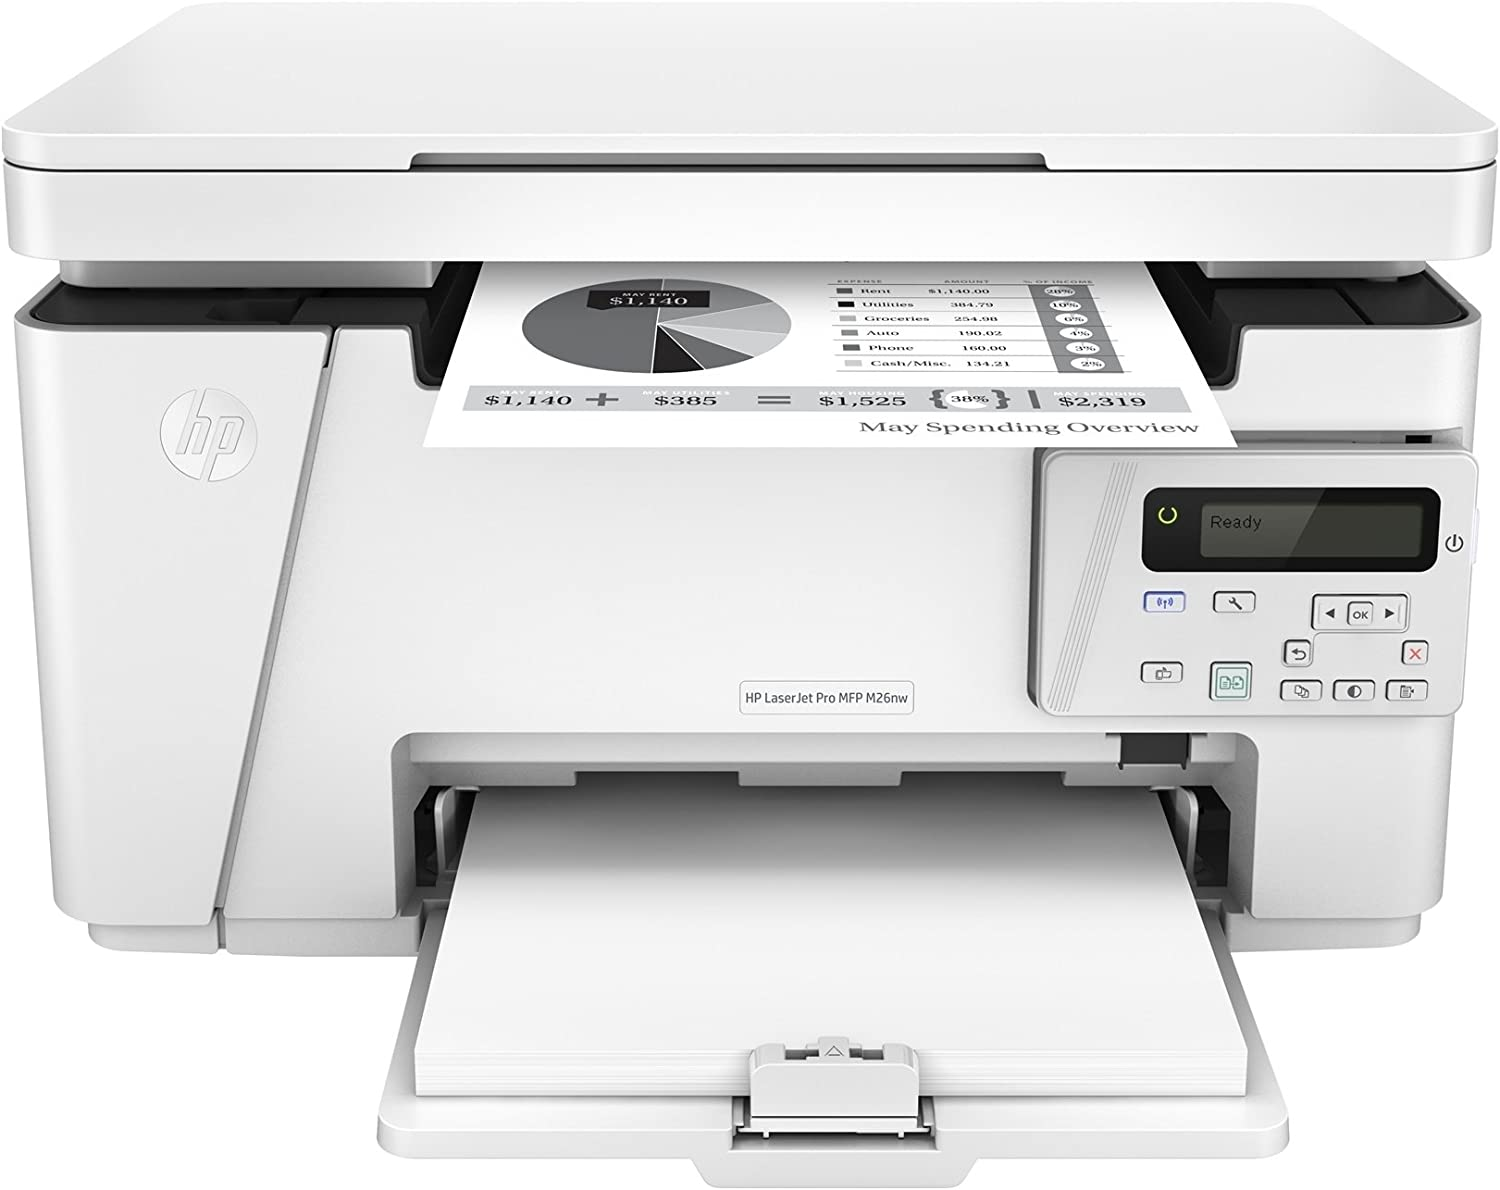 HP LaserJet Pro M26nw Printer, White